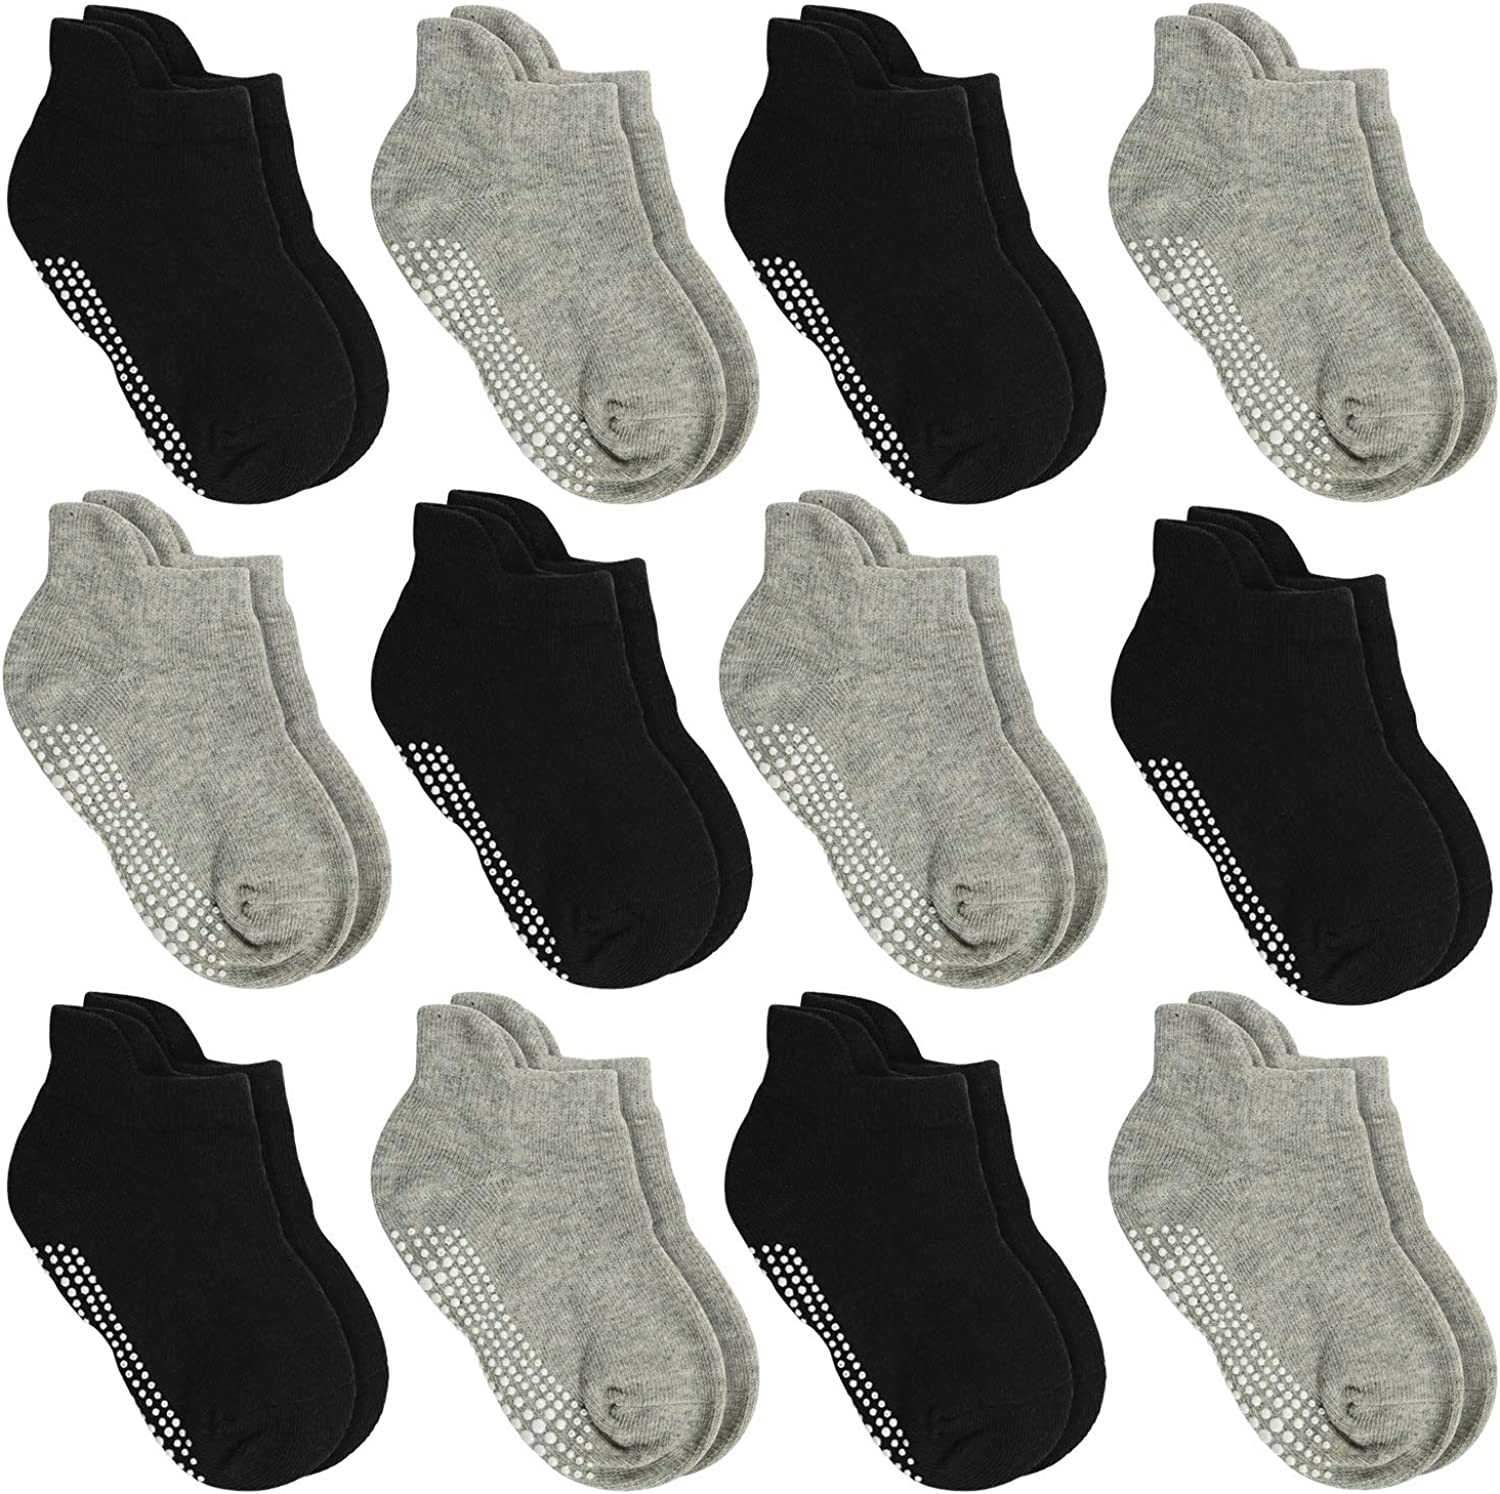 Aminson Anti Slip Non Skid Ankle Socks With Grips for Baby Toddler Kids Boys Girls (12 Pairs-Black/Grey, 3-5 Years)